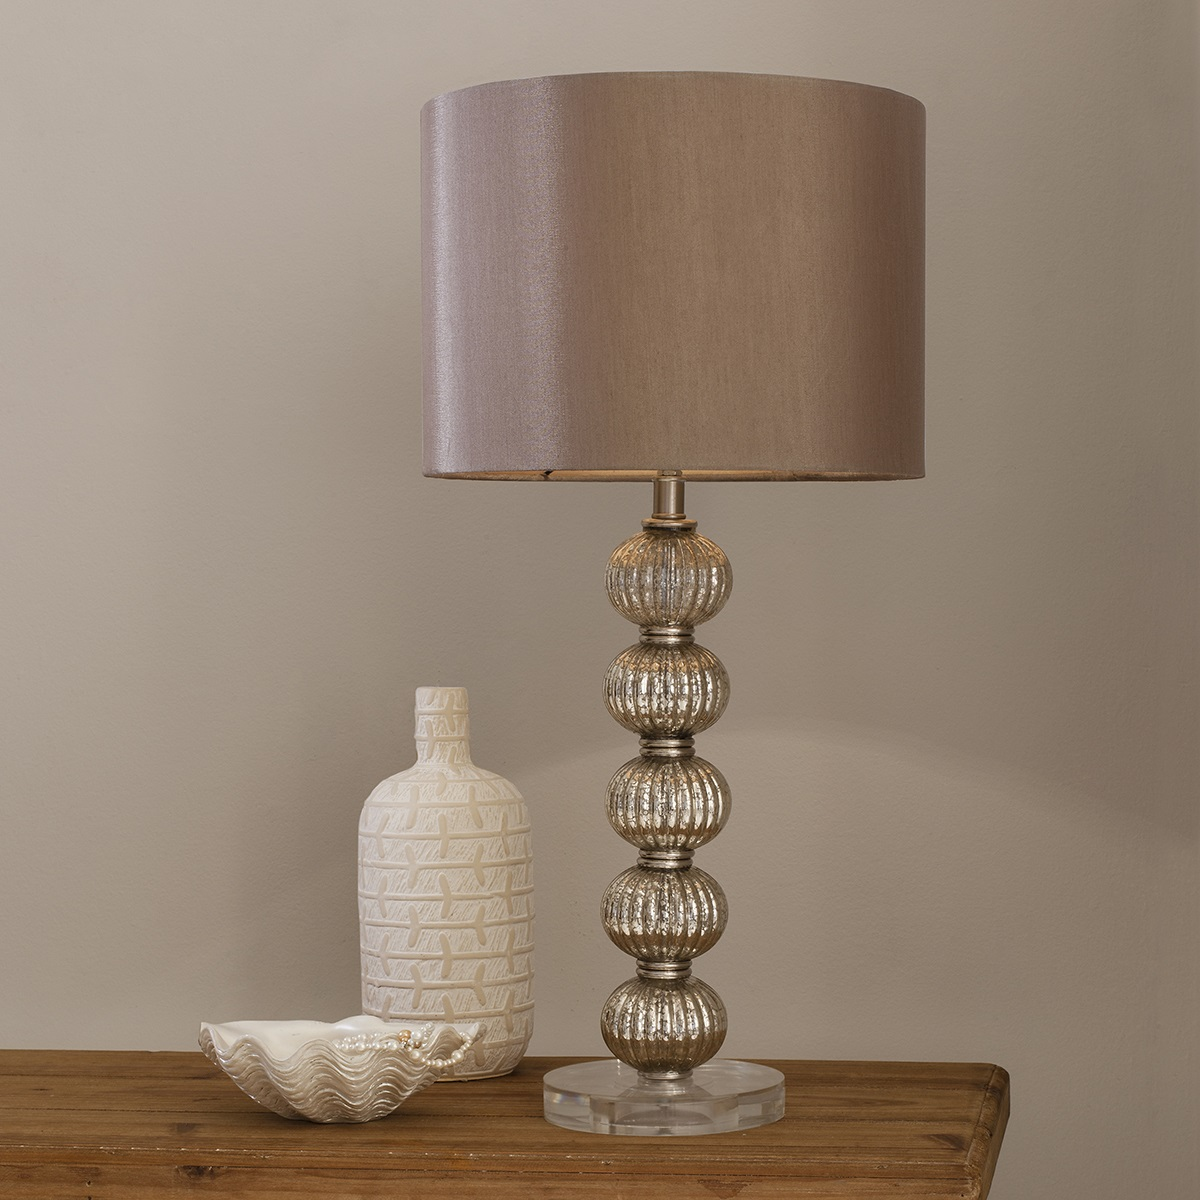 Image of Adriana Table Lamp